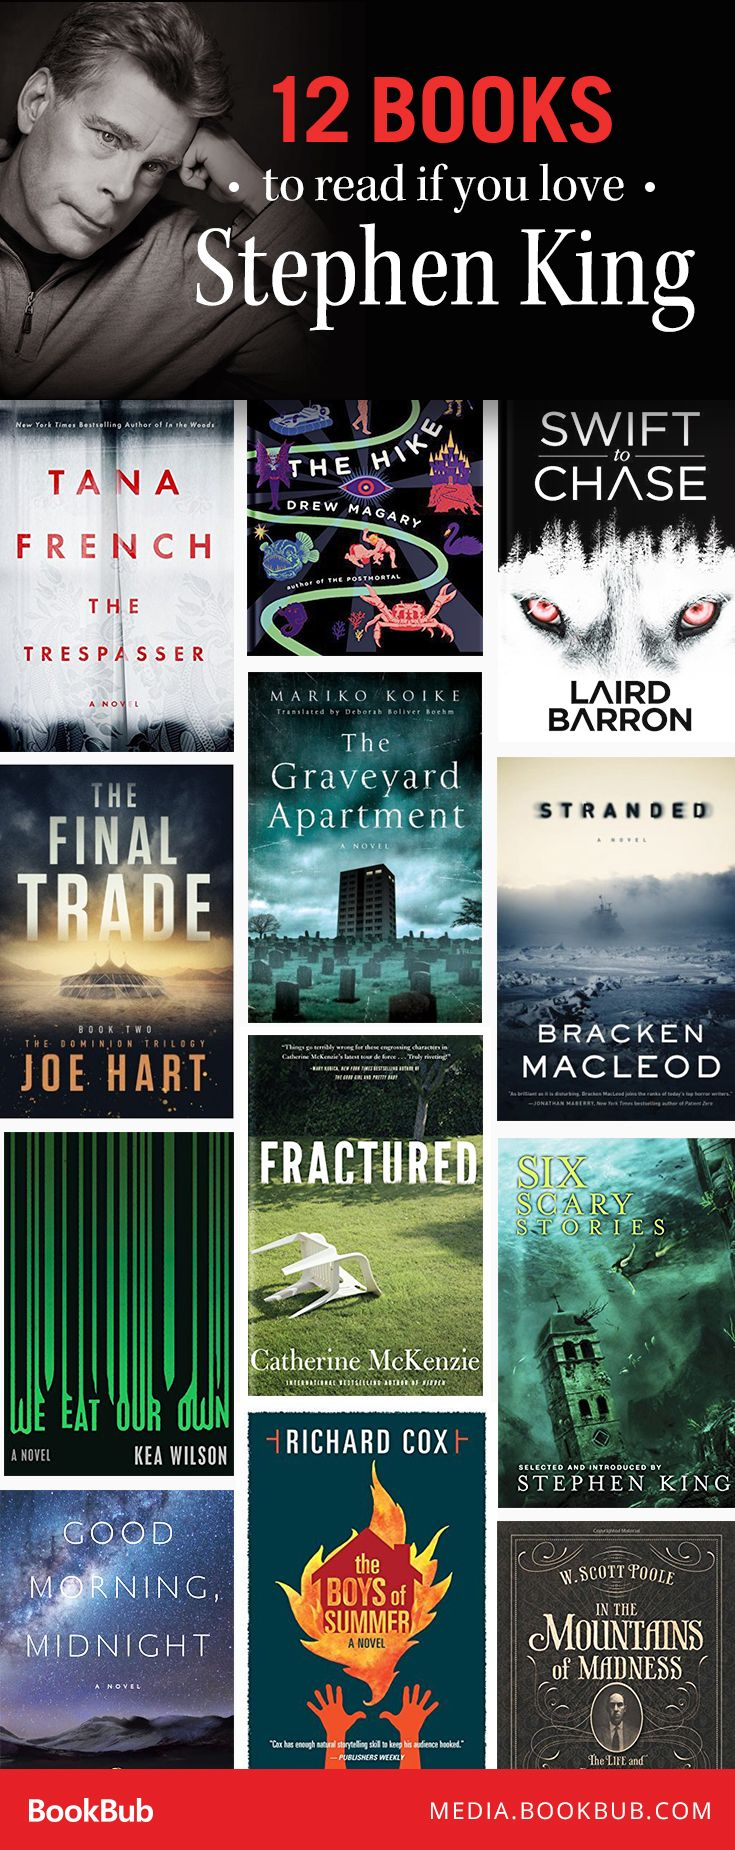 12 Books To Read If You Love Stephen King, Inlcuding A Crime Thriller From  Tana